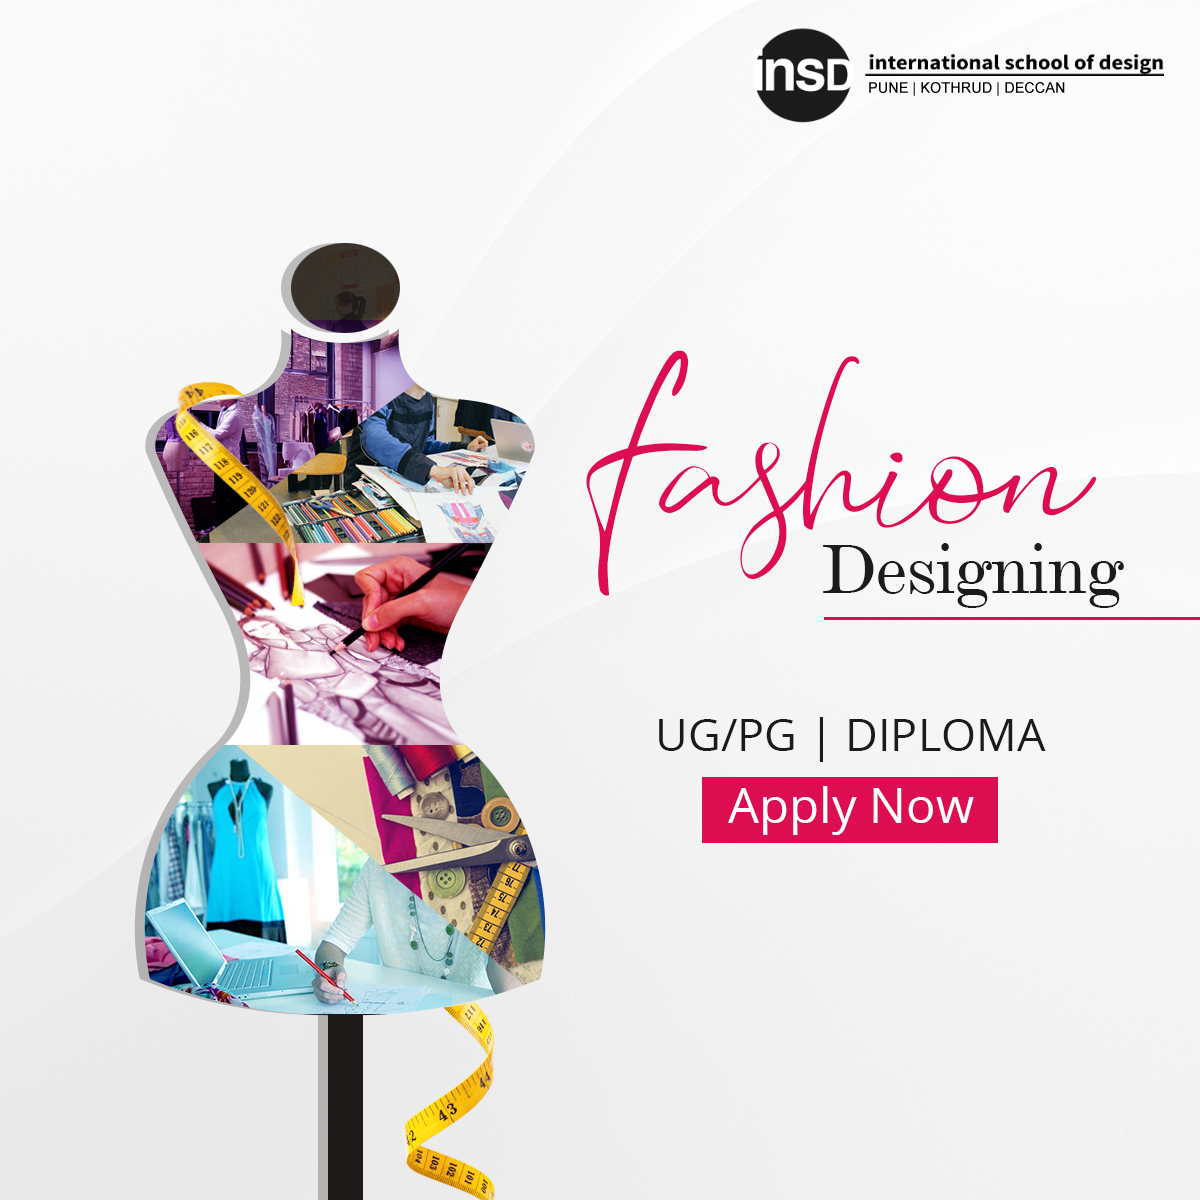 Insdpune Kothrud On Twitter Enhance Your Creative Skills And Learn Fashion Designing At The Best Design Institute In Pune Eligibility 10 2 Ug Pg Degree Diploma ℹ Apply Now Https T Co I6rpszkfh5